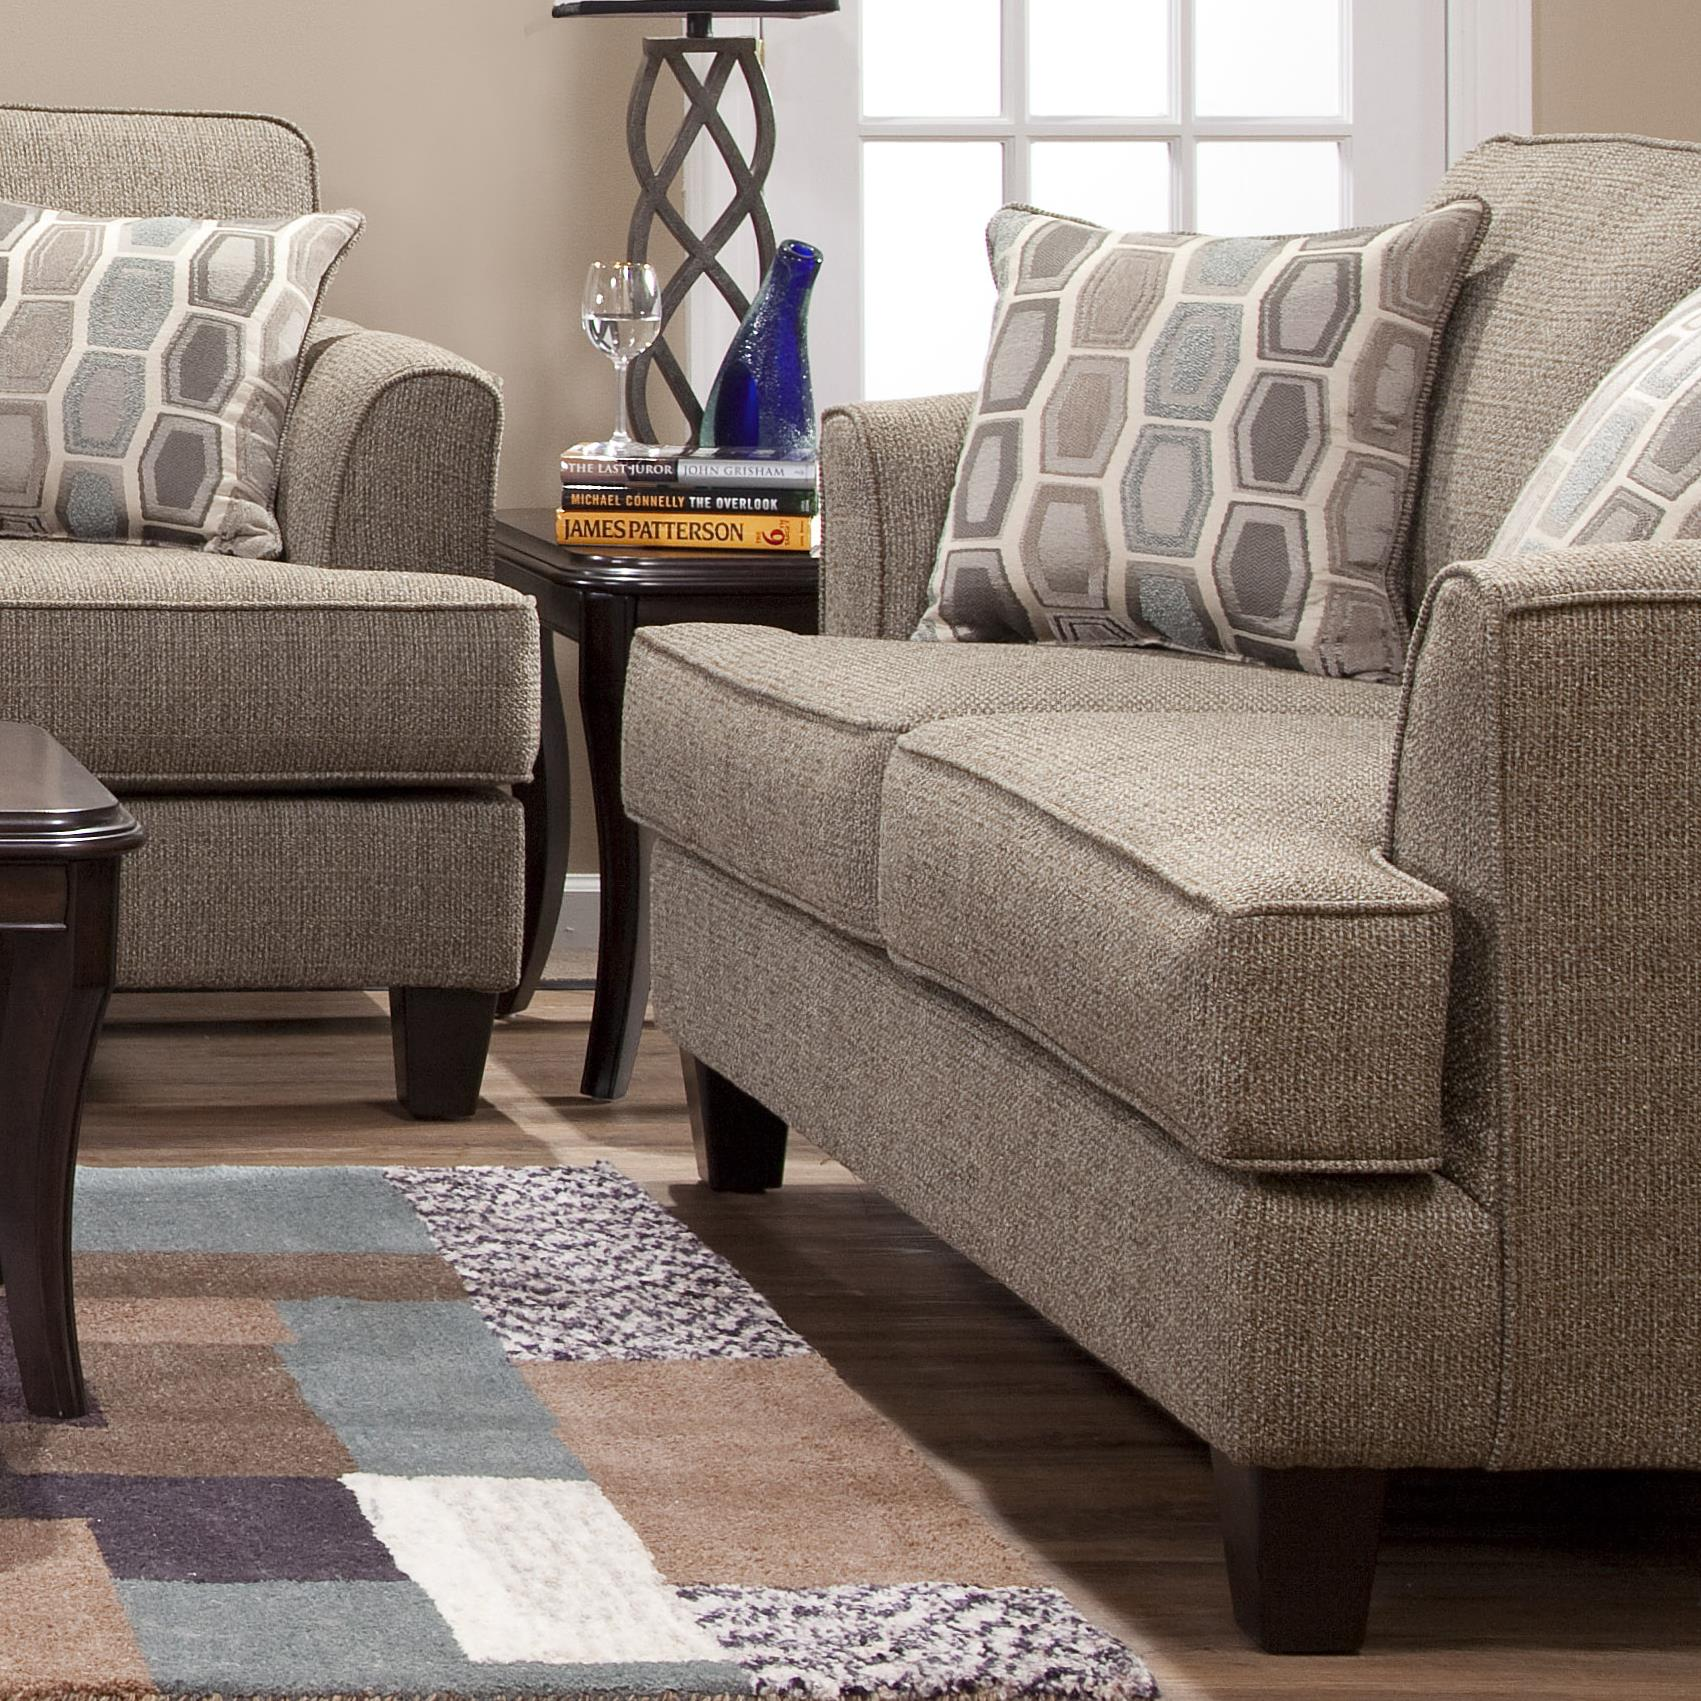 Serta Upholstery by Hughes Furniture 5600 Transitional Love Seat - Item Number: 5600LS-BBBG